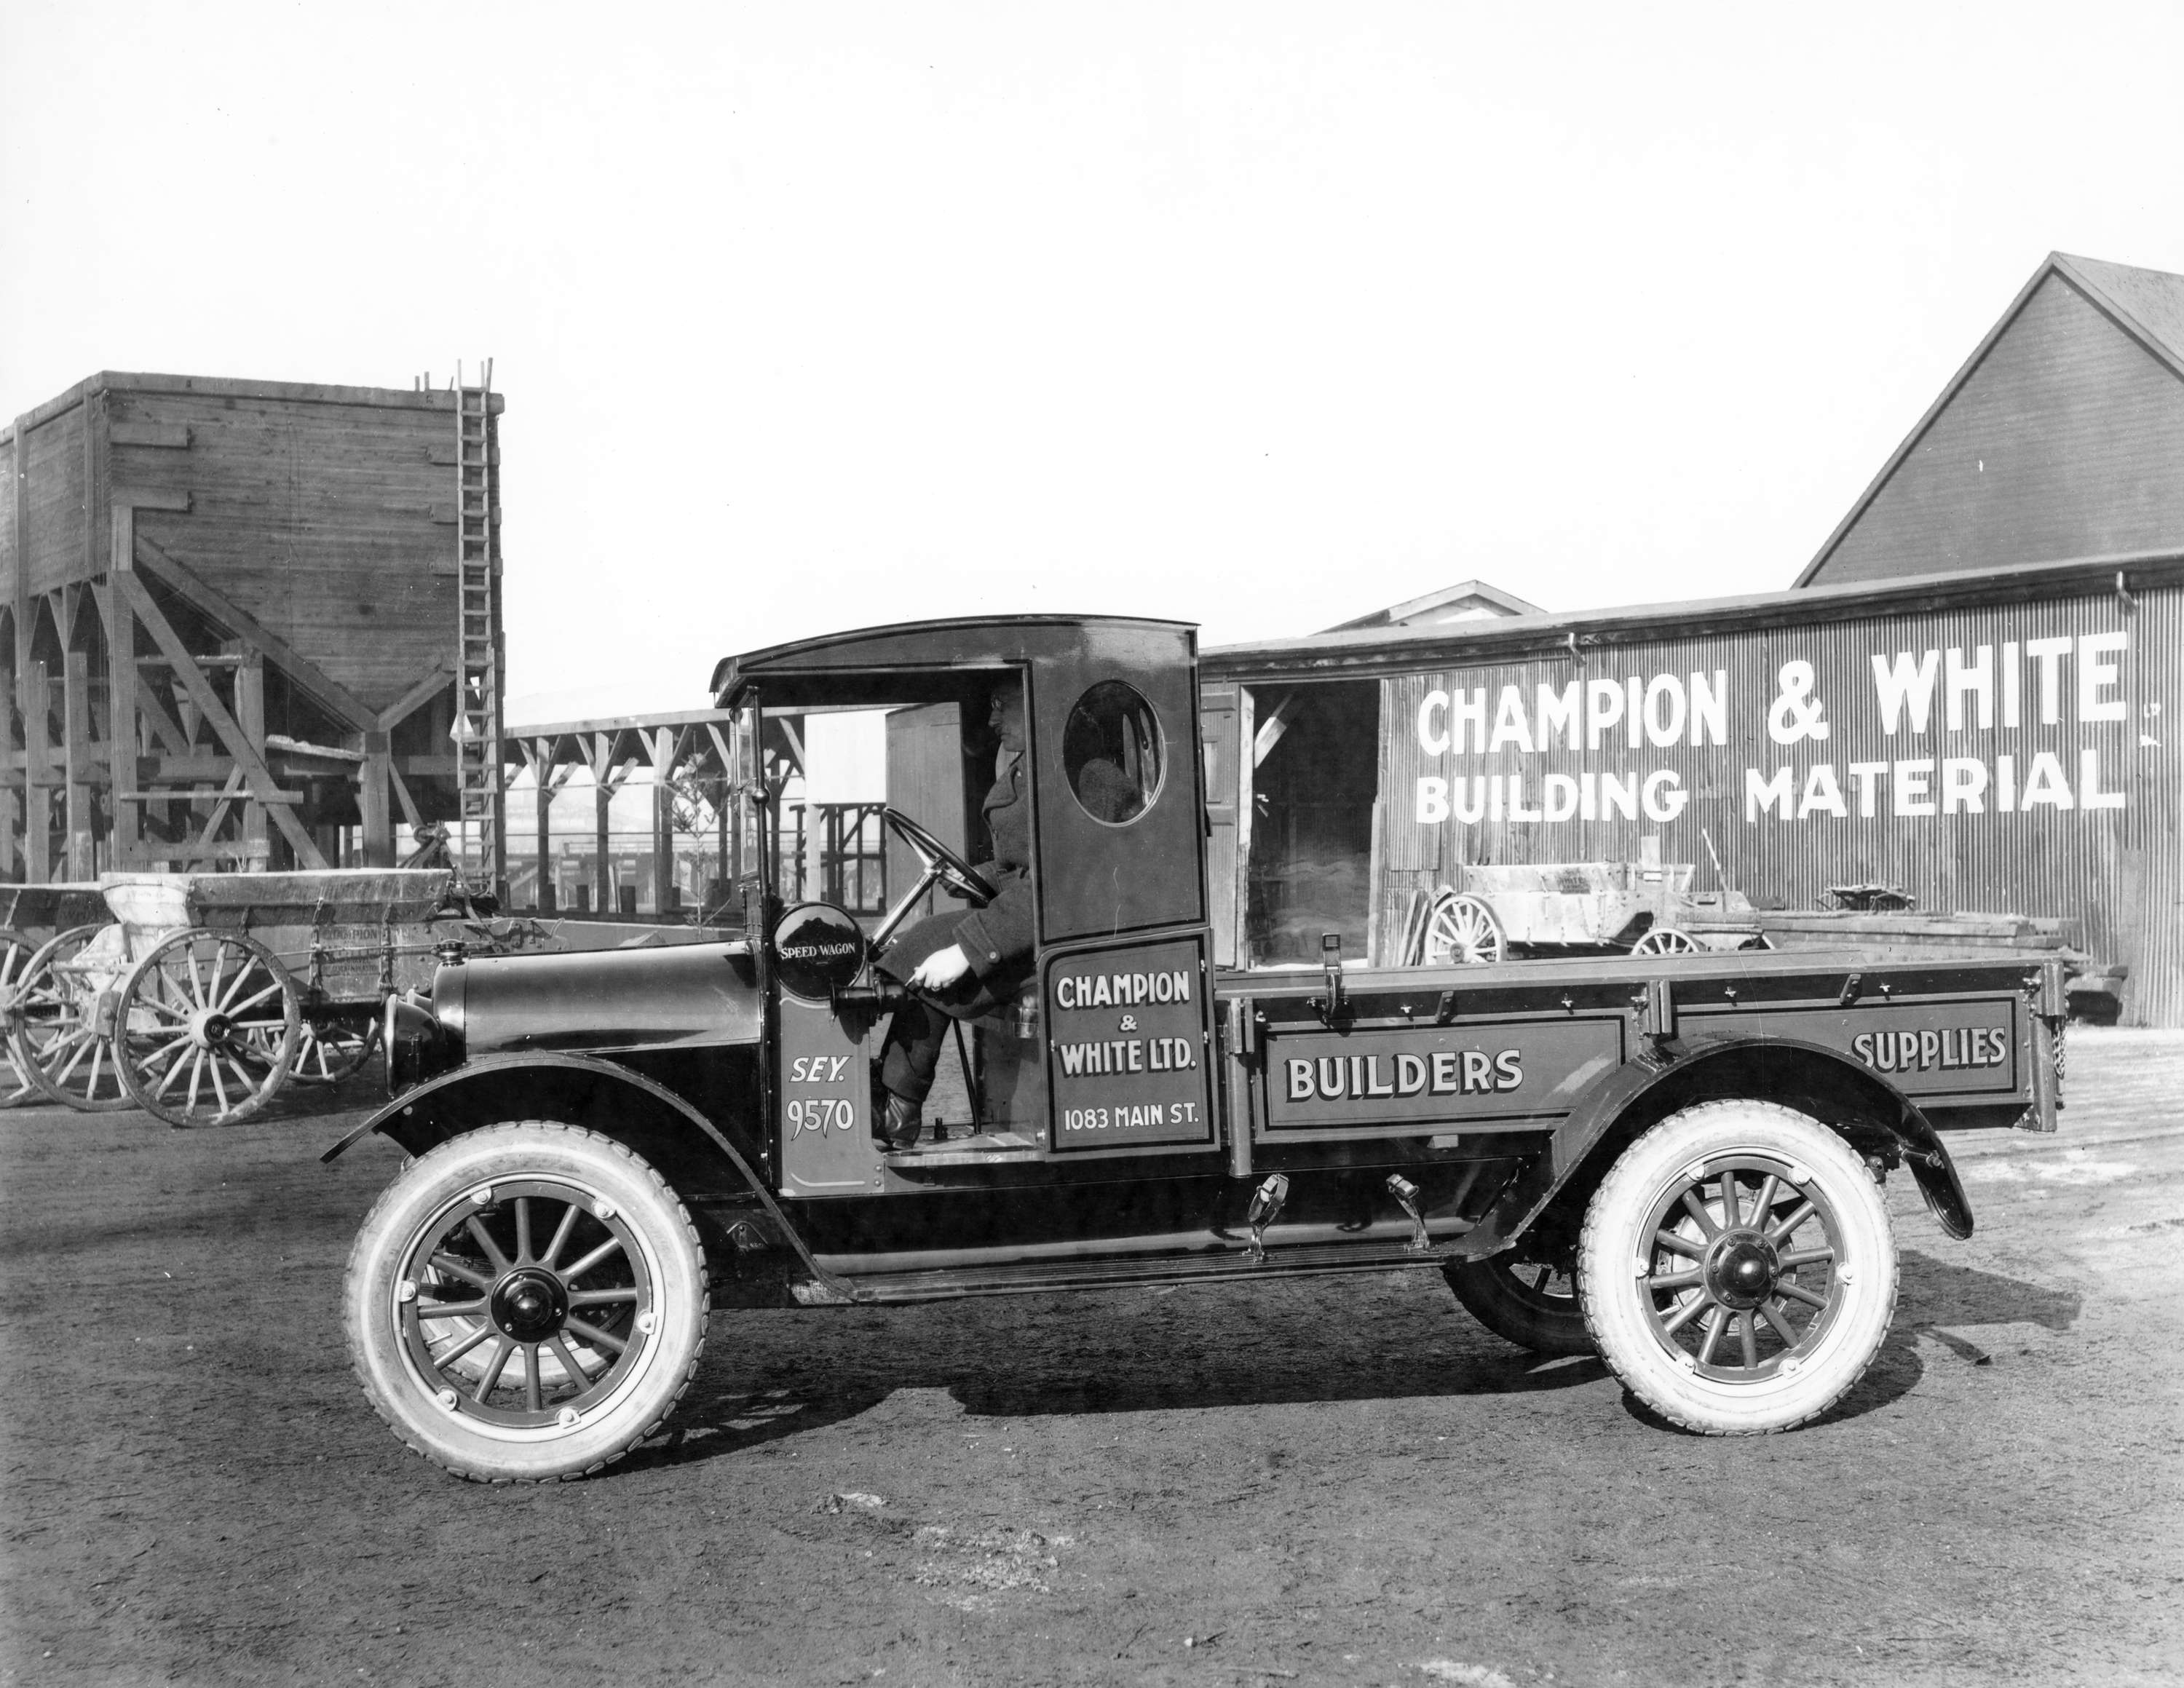 Champion Ford Reo >> Truck Reo Champion And White Ltd Builders Supplies City